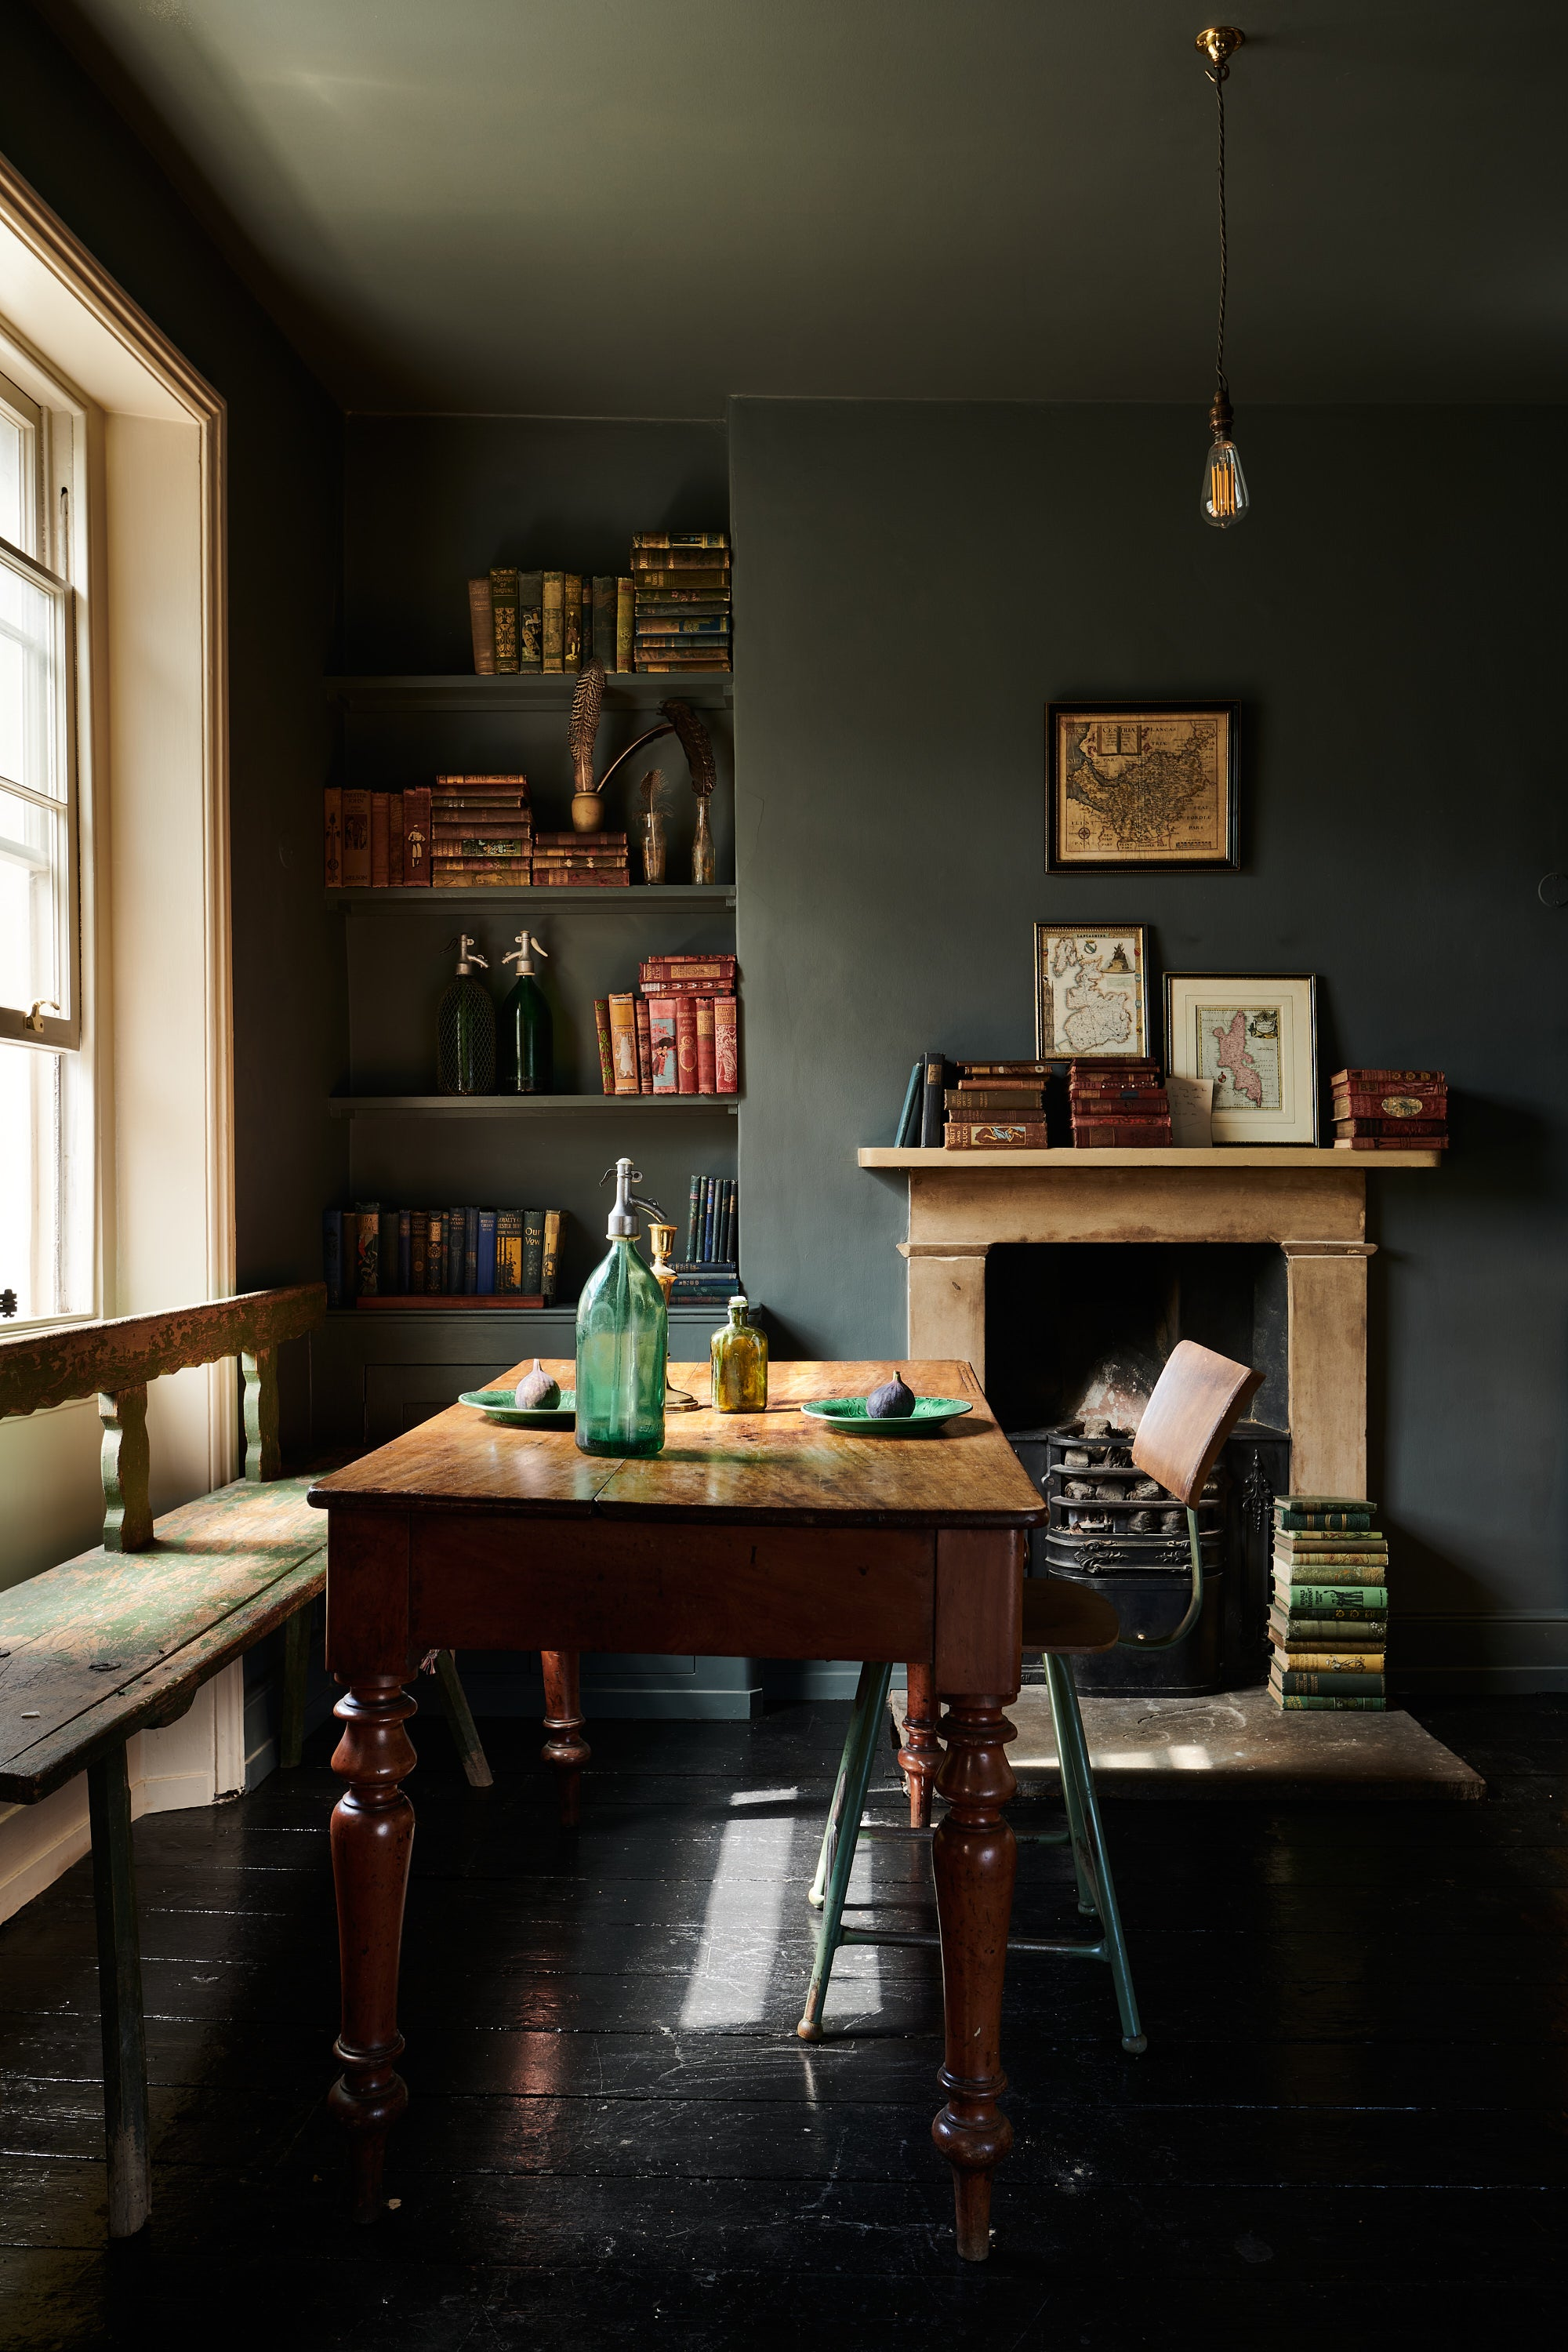 deVOL's St. Johns Square Haberdasher's Kitchen